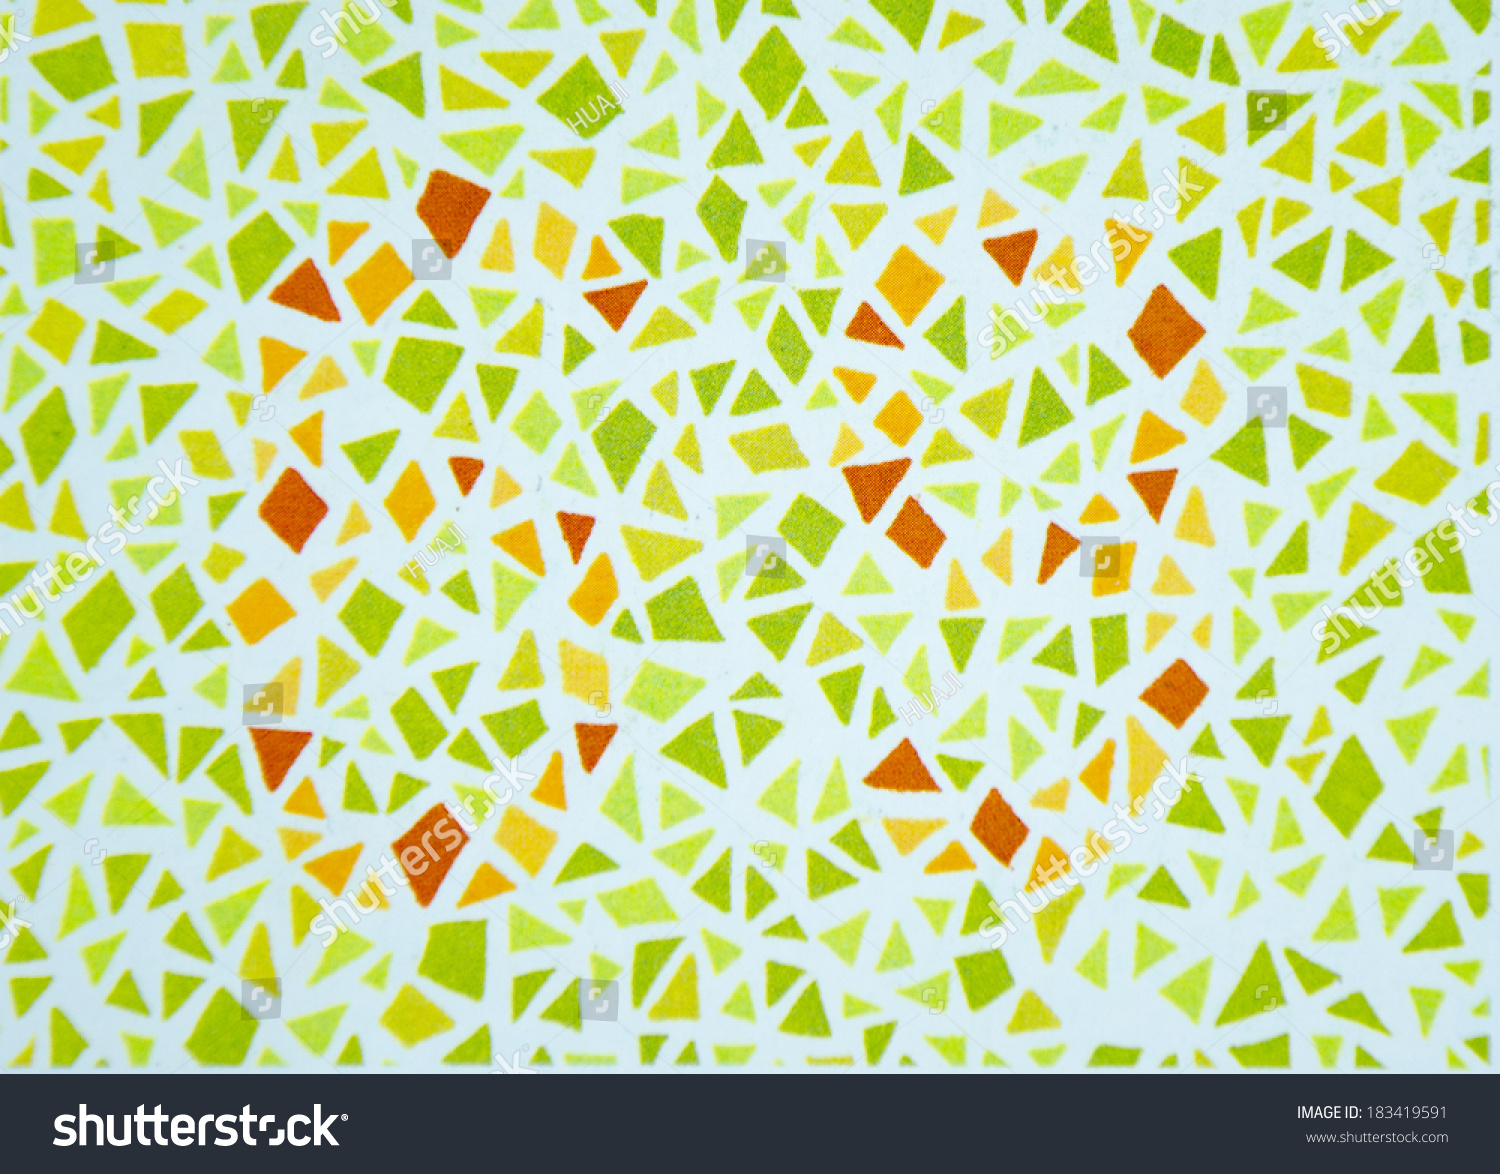 Color Blind Test 69 Stock Photo (Royalty Free) 183419591 - Shutterstock